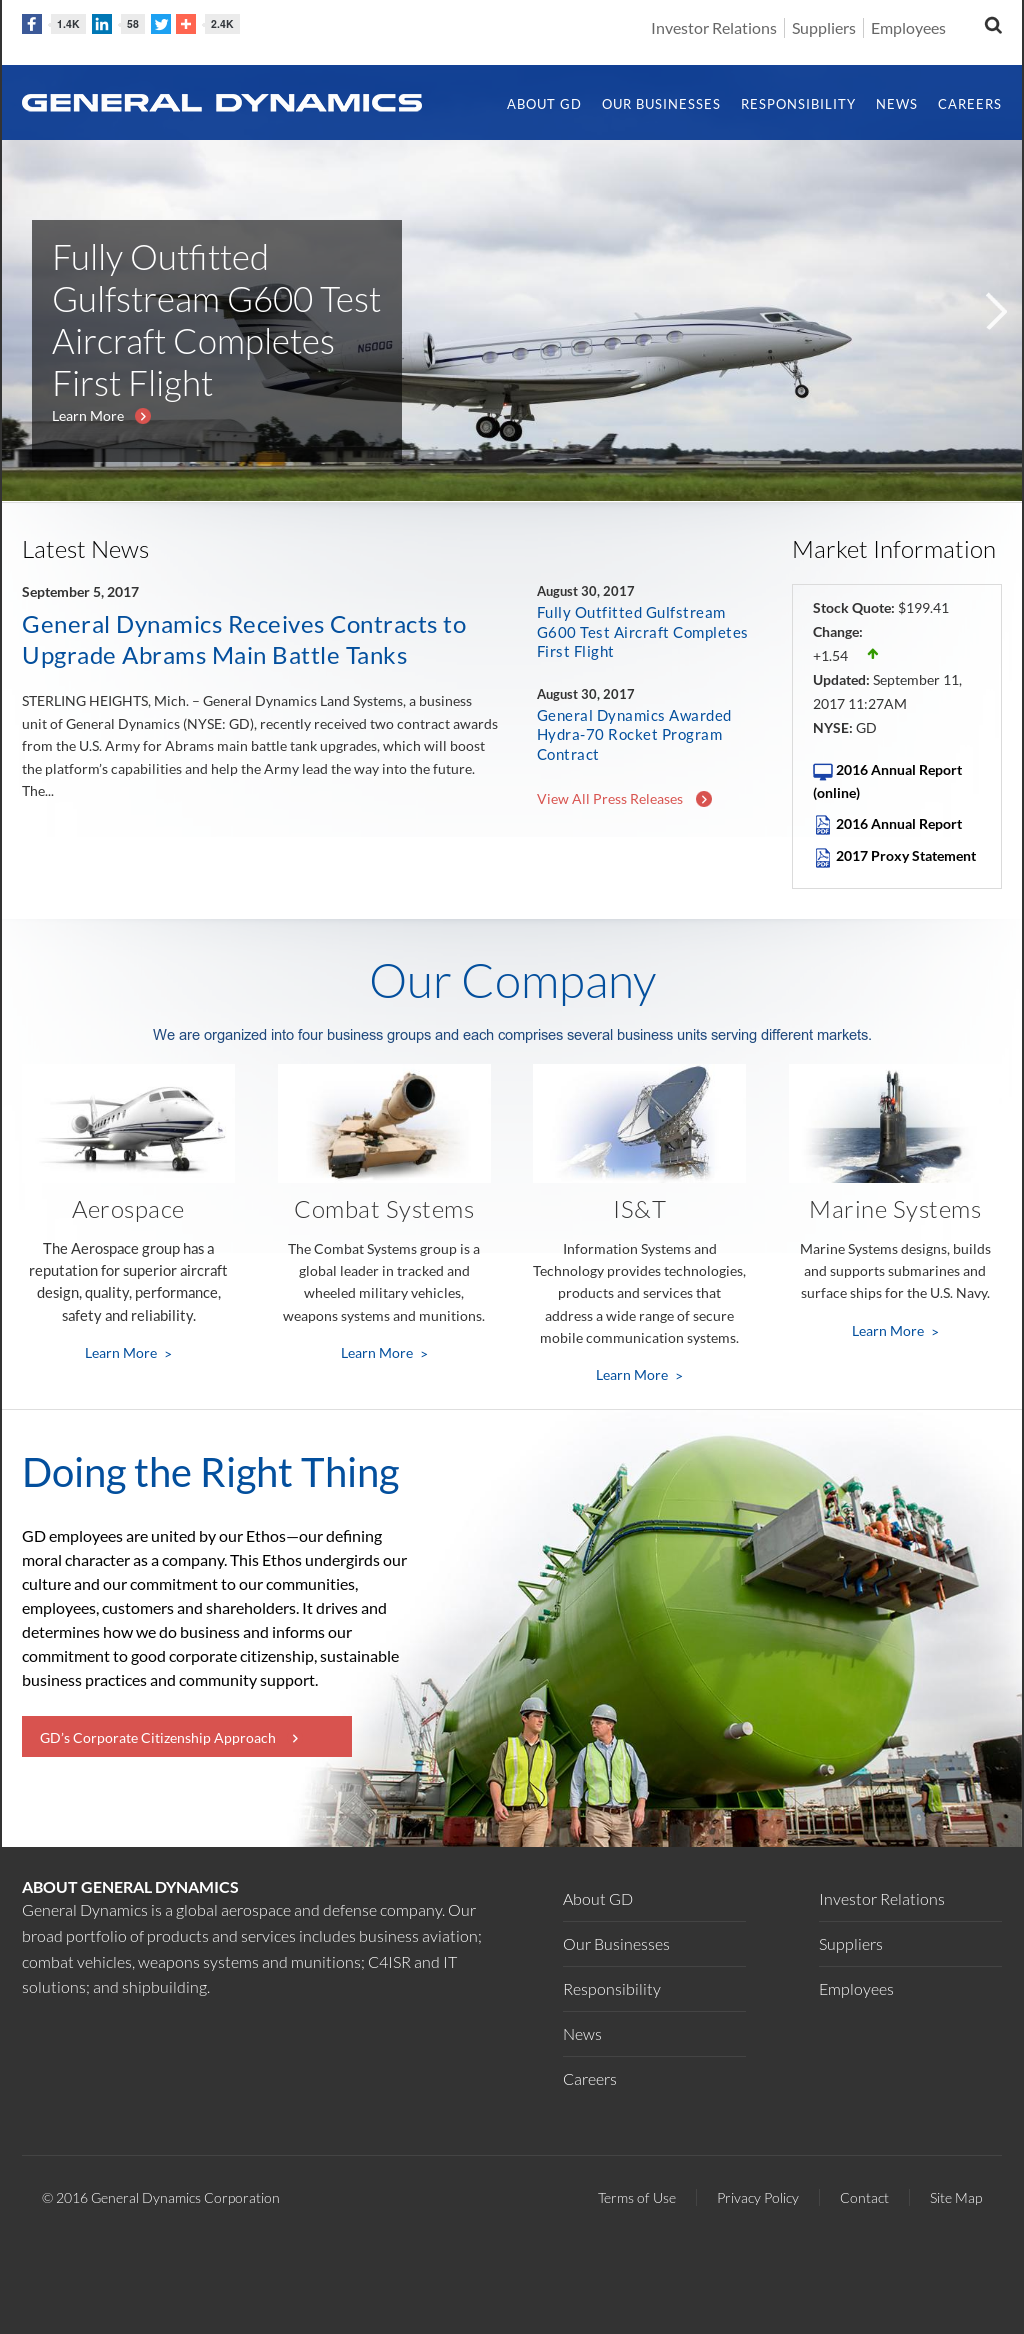 General Dynamics Competitors, Revenue and Employees - Owler